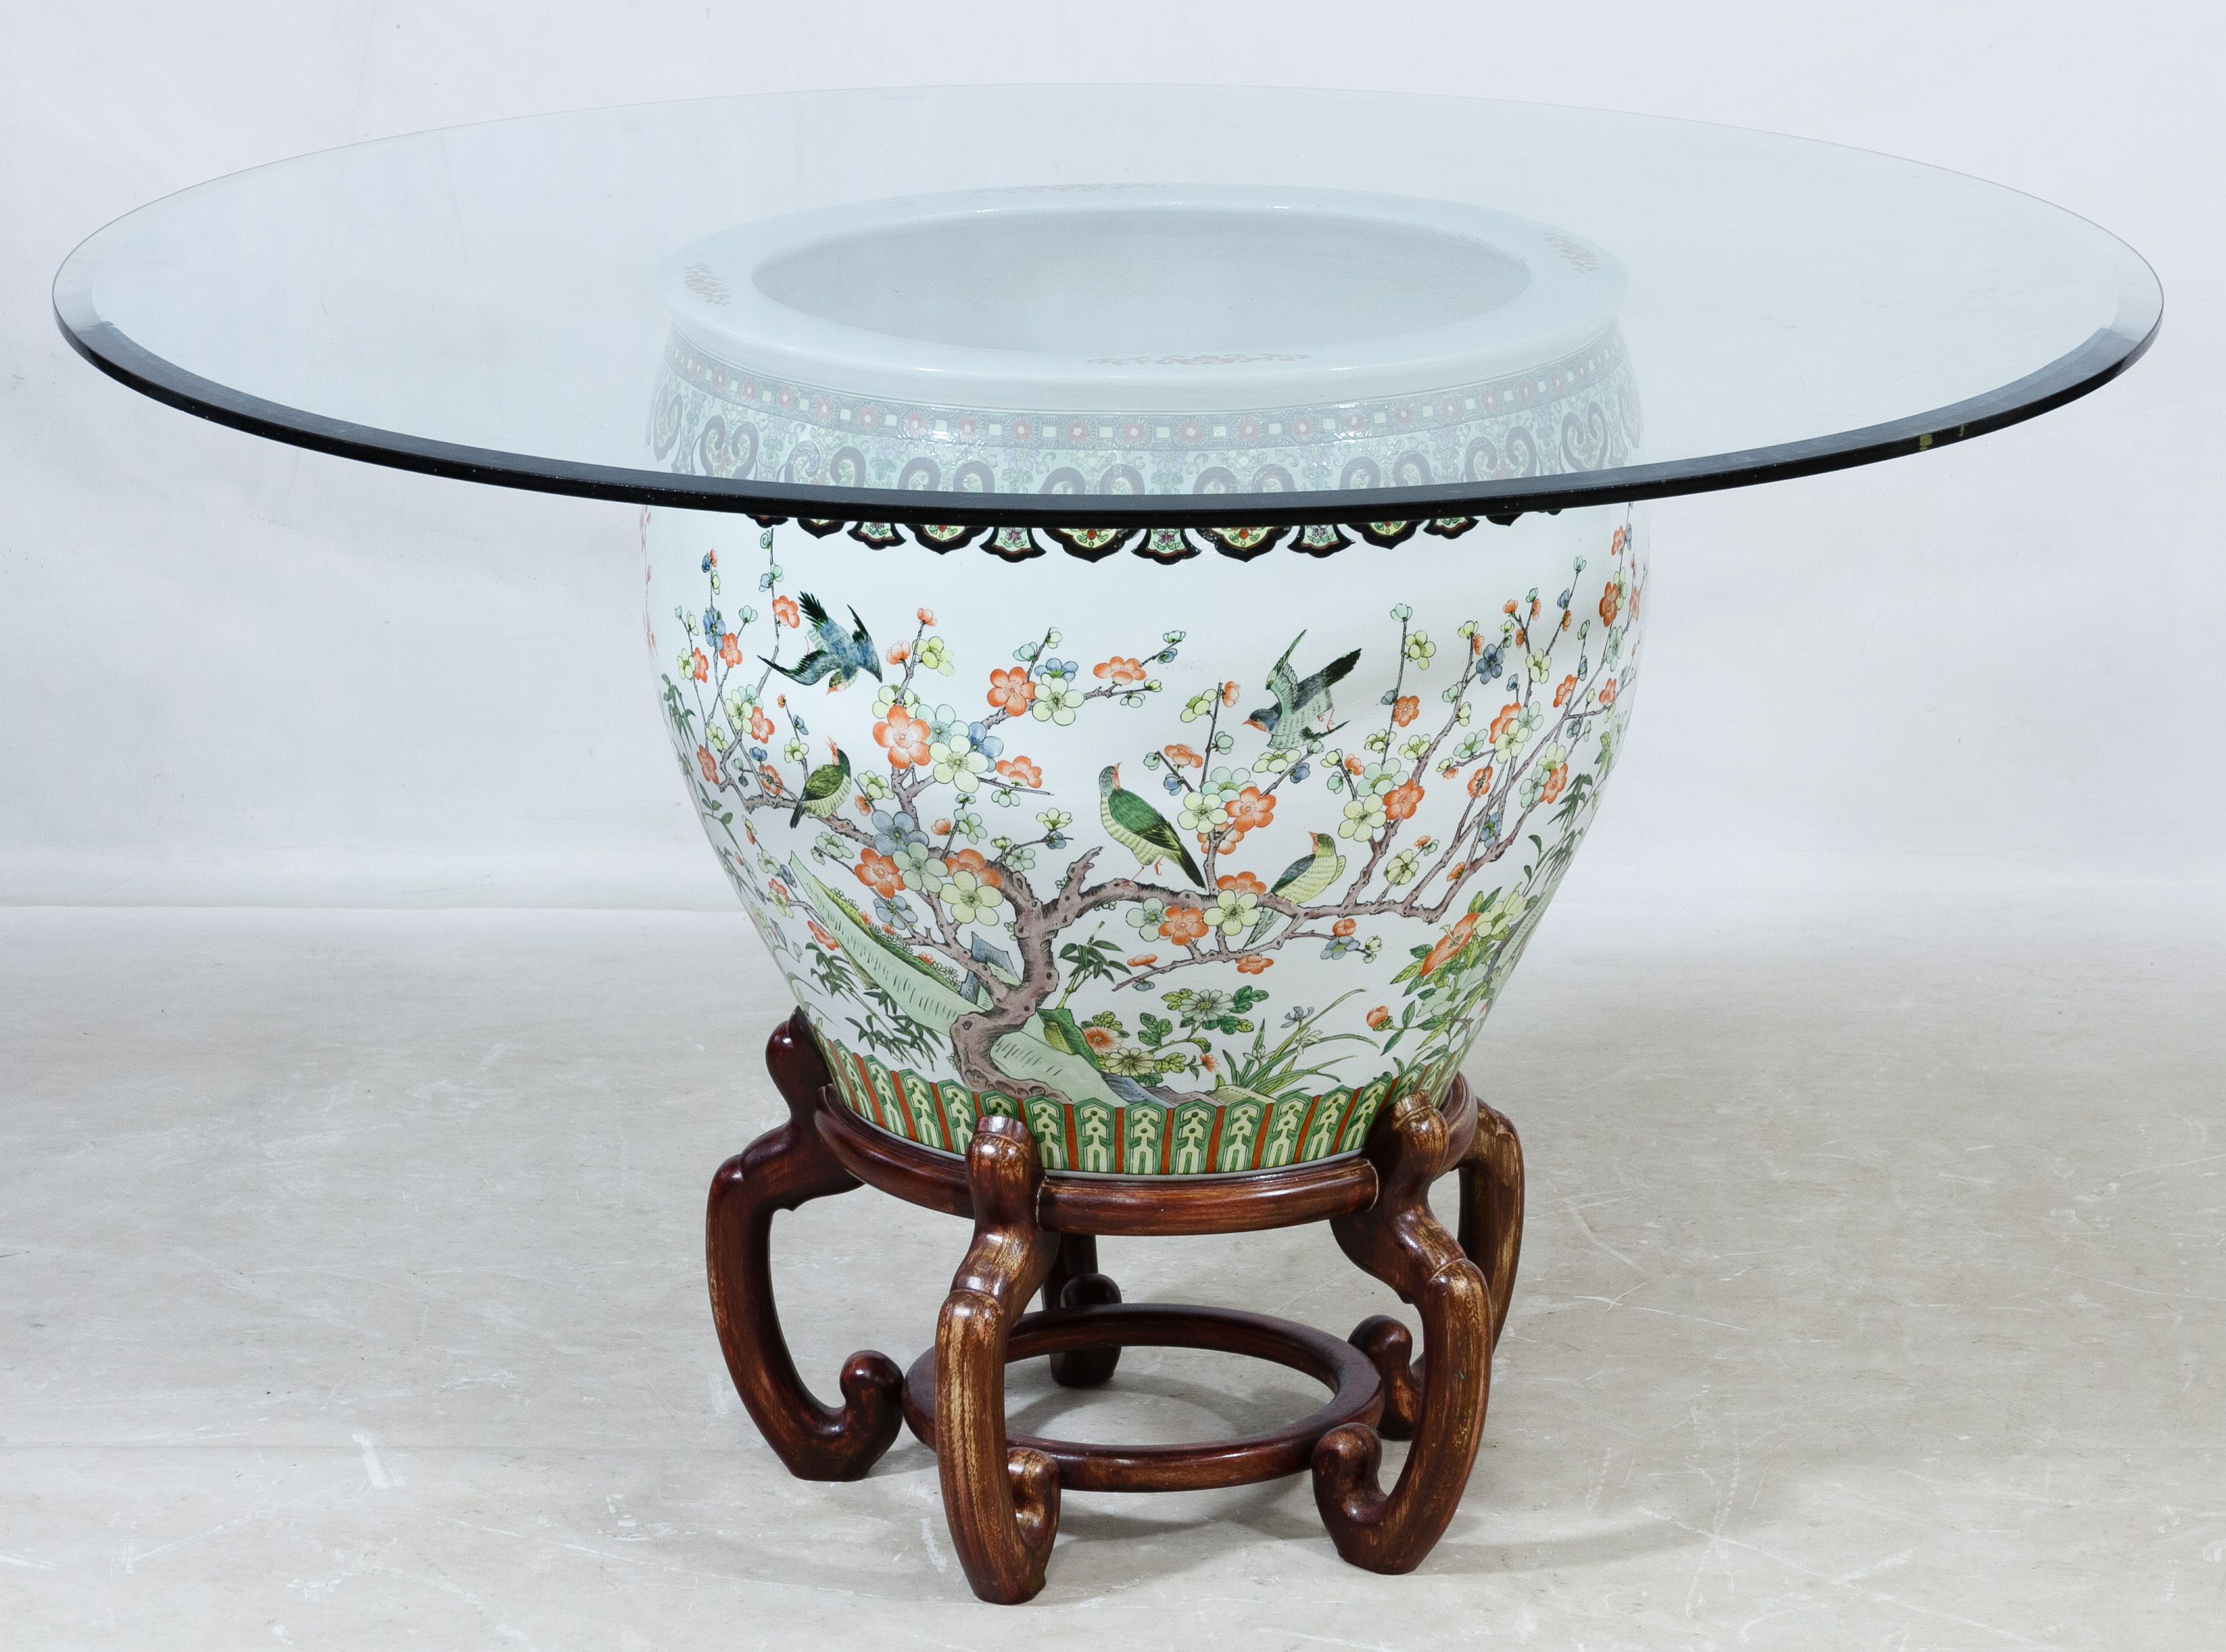 Lot 557 Asian Style Fish Bowl and Glass Top Coffee Table 20th